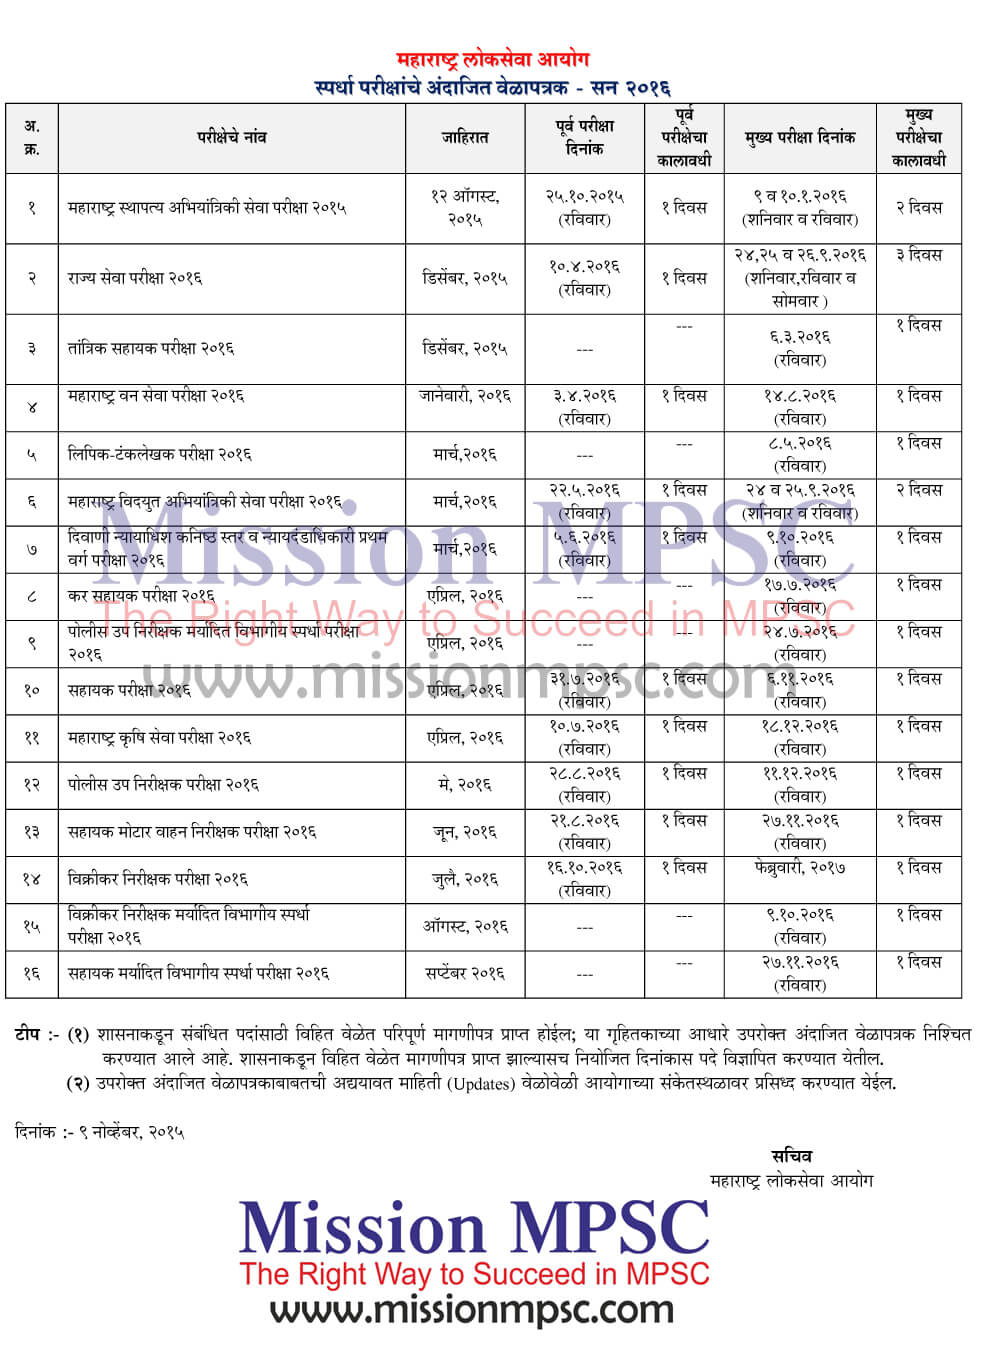 Tentative Schedule of Competitive Examination in 2016